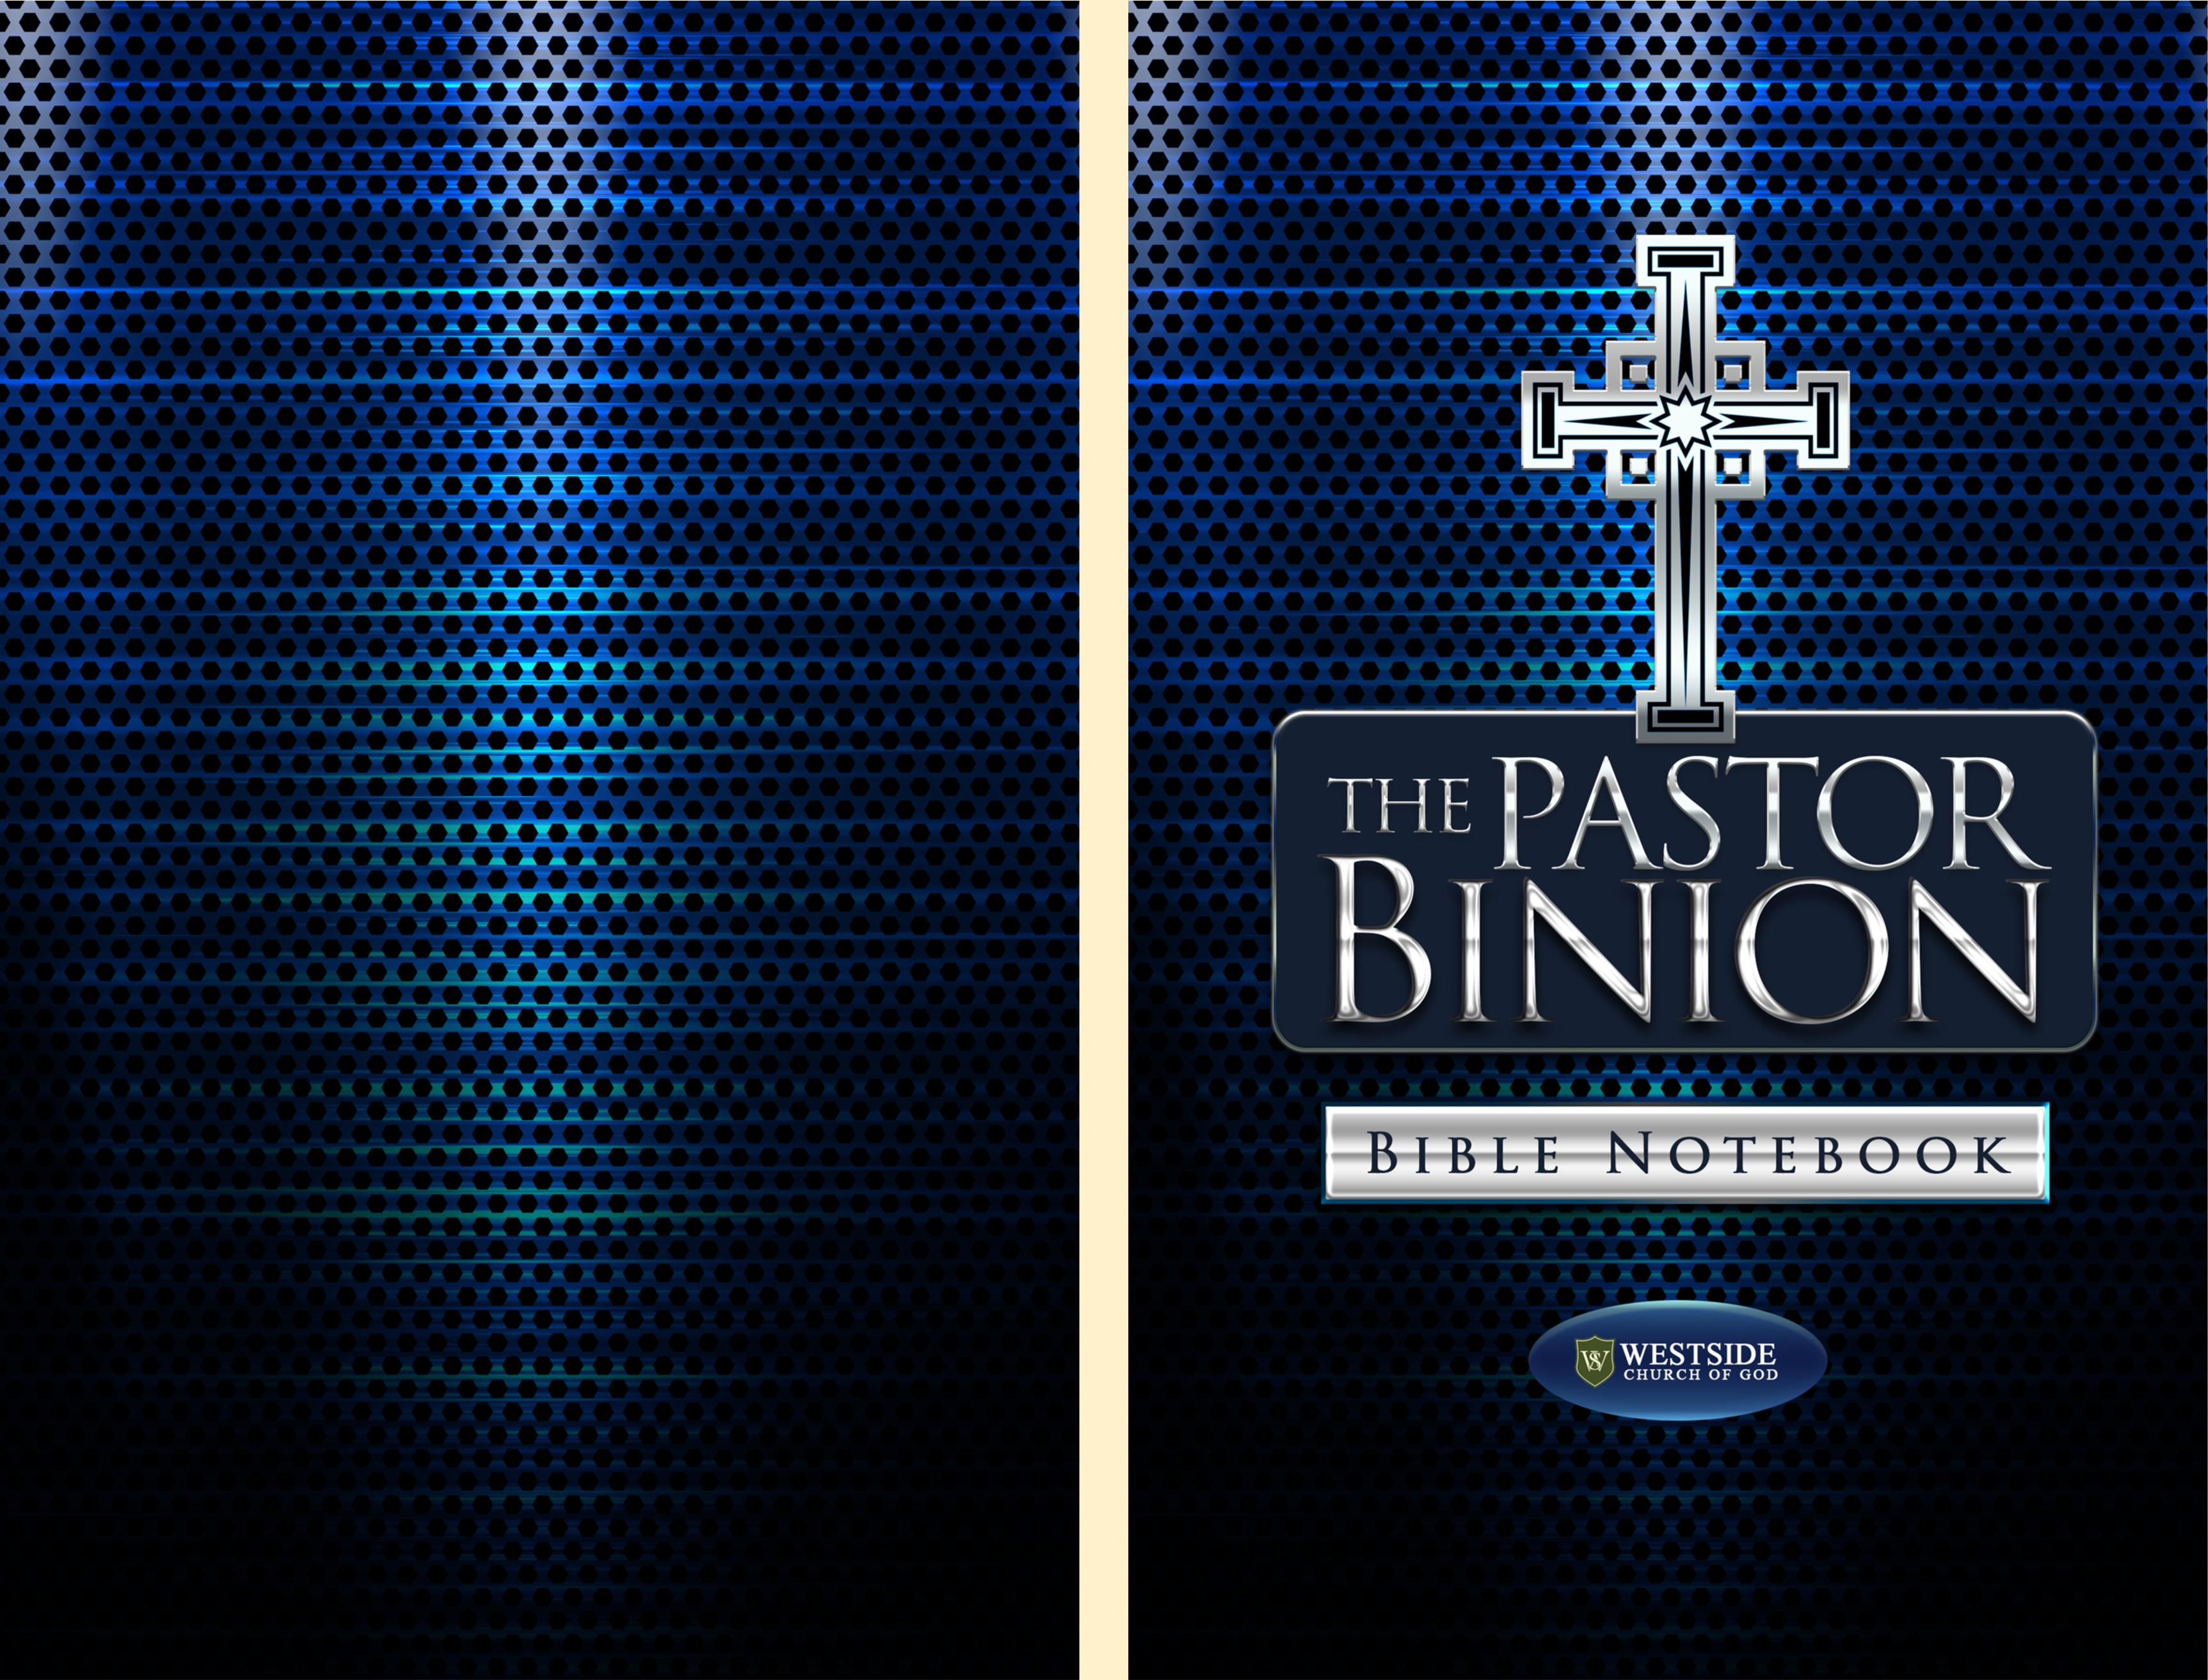 The Pastor Binion Bible Notebook cover image